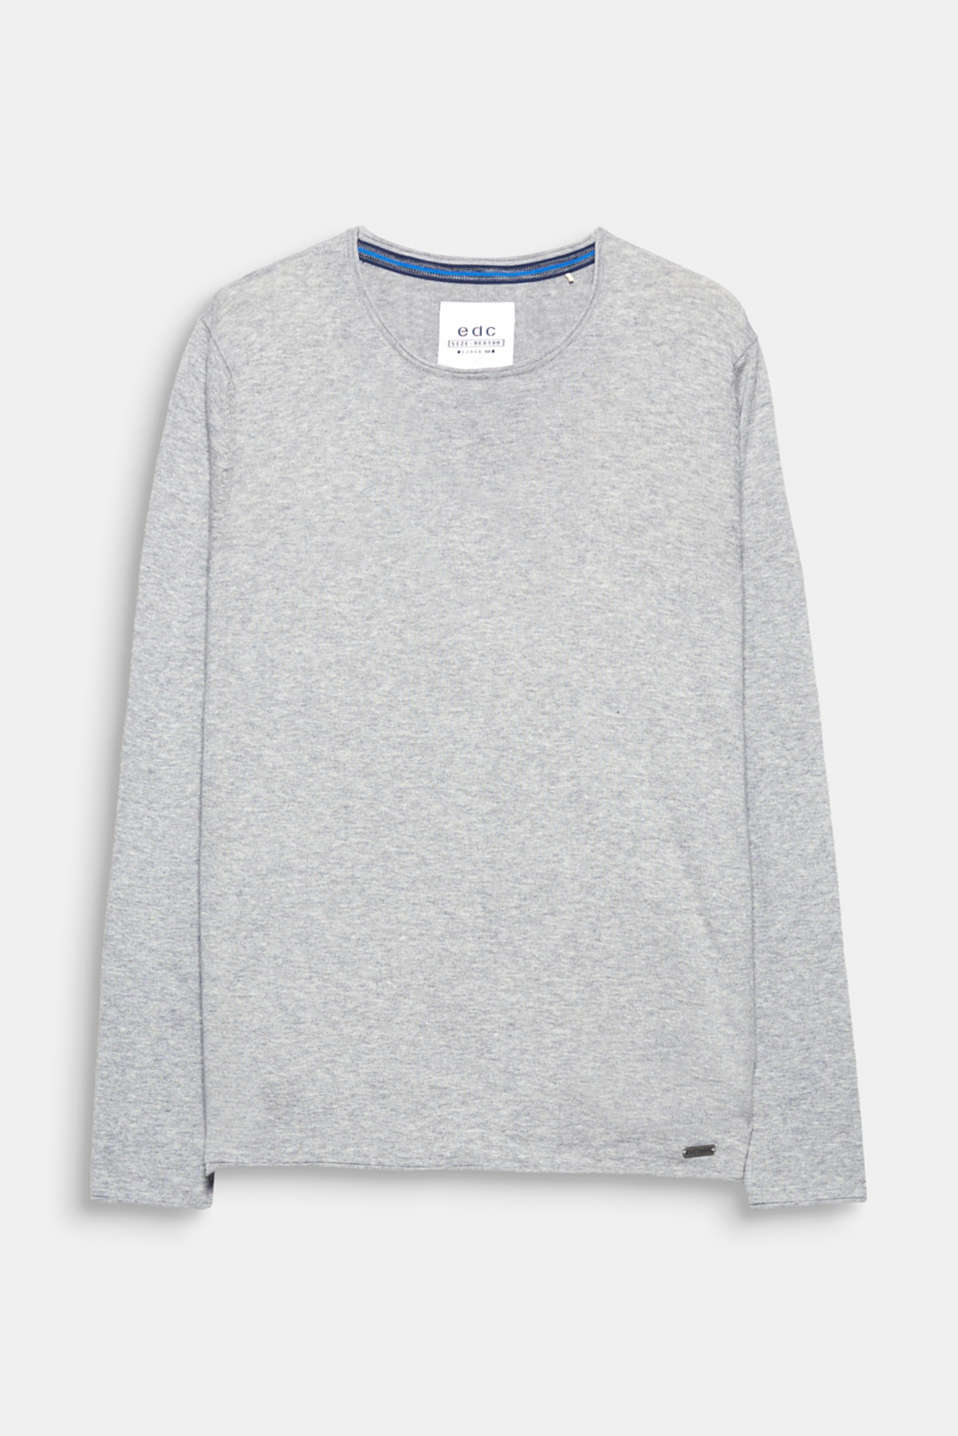 A sporty fashion essential to complete your look: fine knit jumper in 100% cotton.